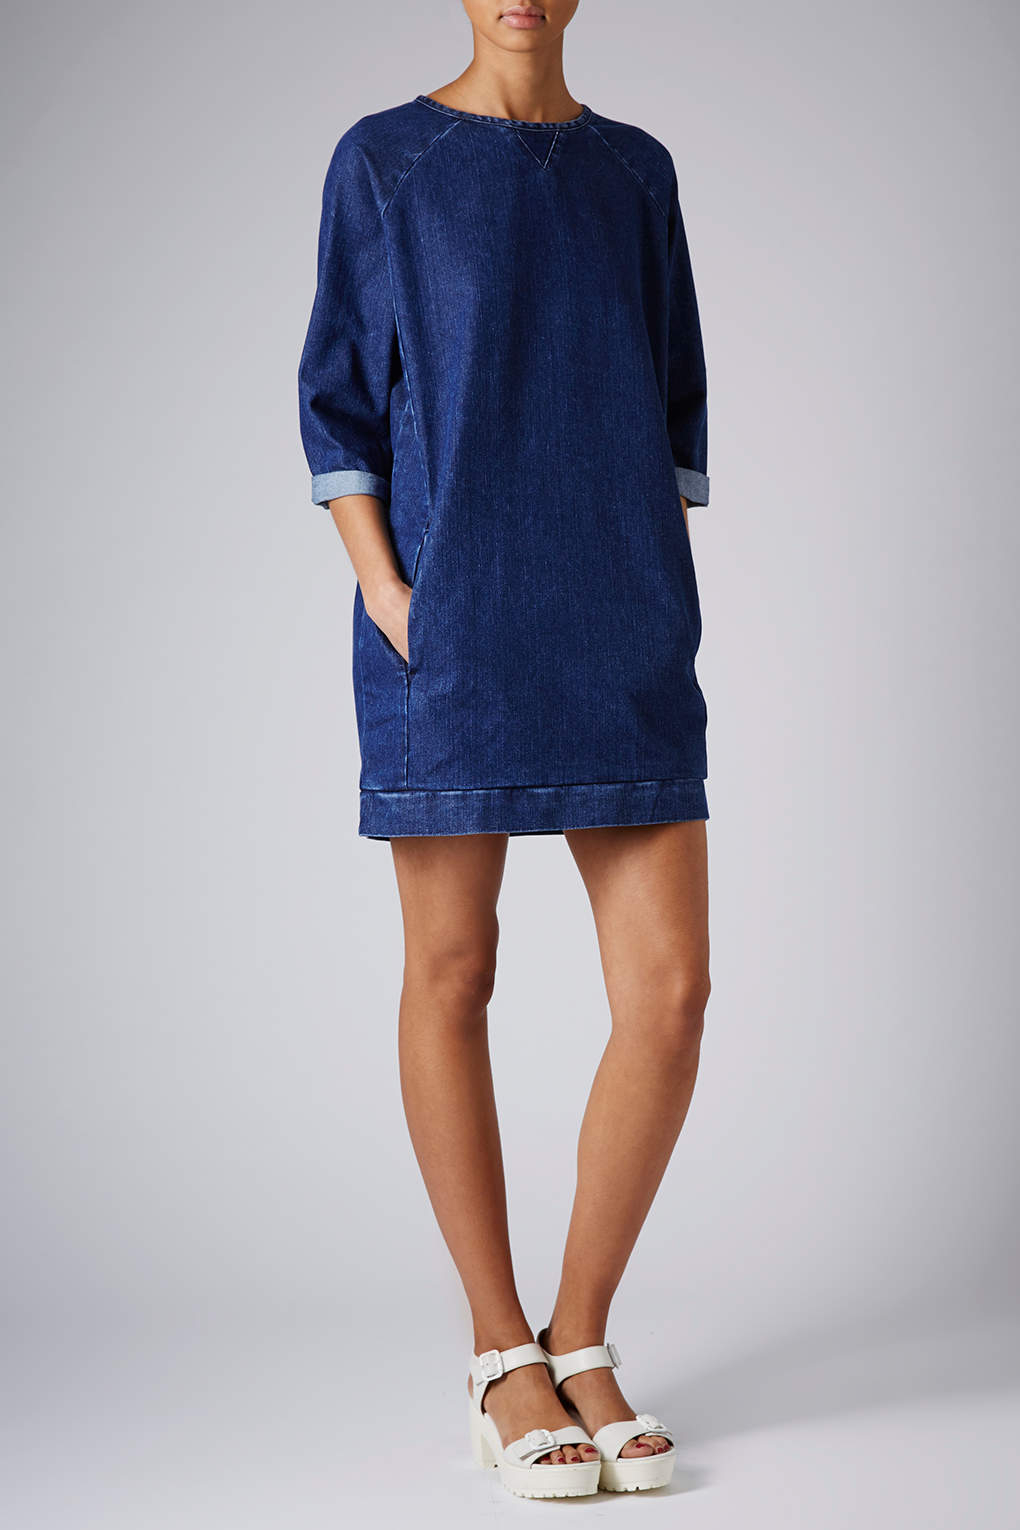 book of womens denim jumper dress in singapore by sophia